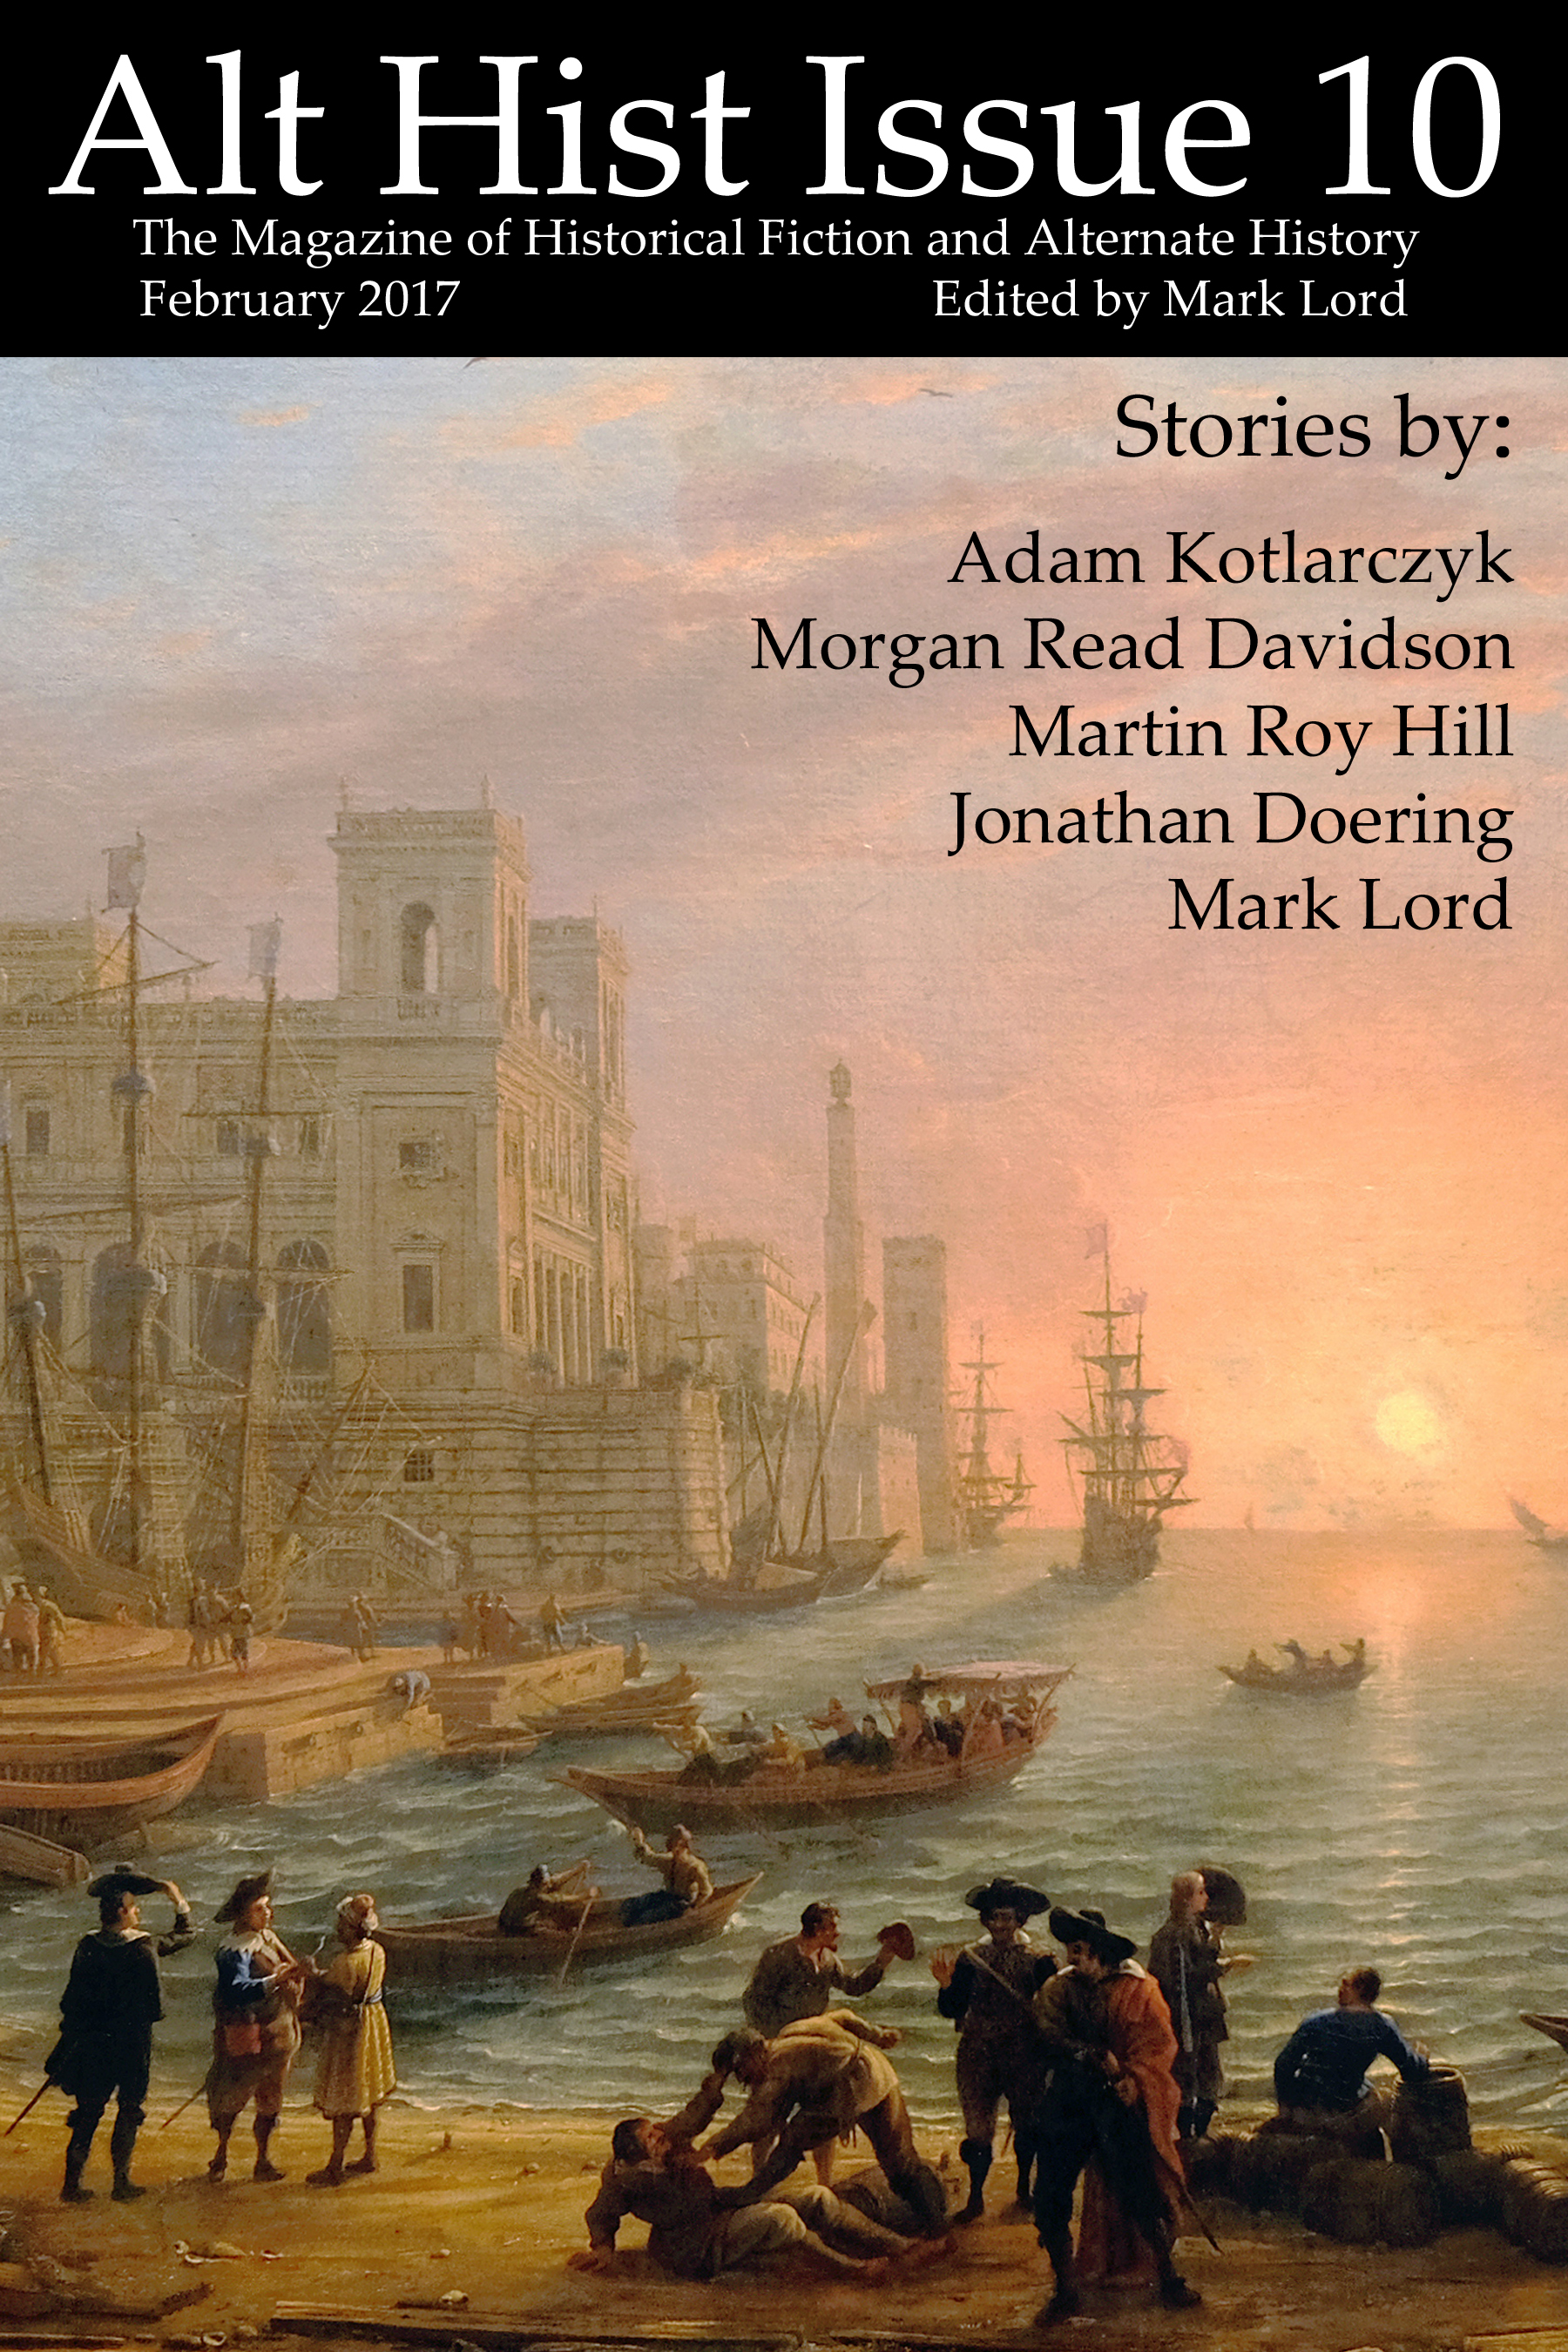 Alt Hist Issue 10 - the Latest Issue of Alt Hist